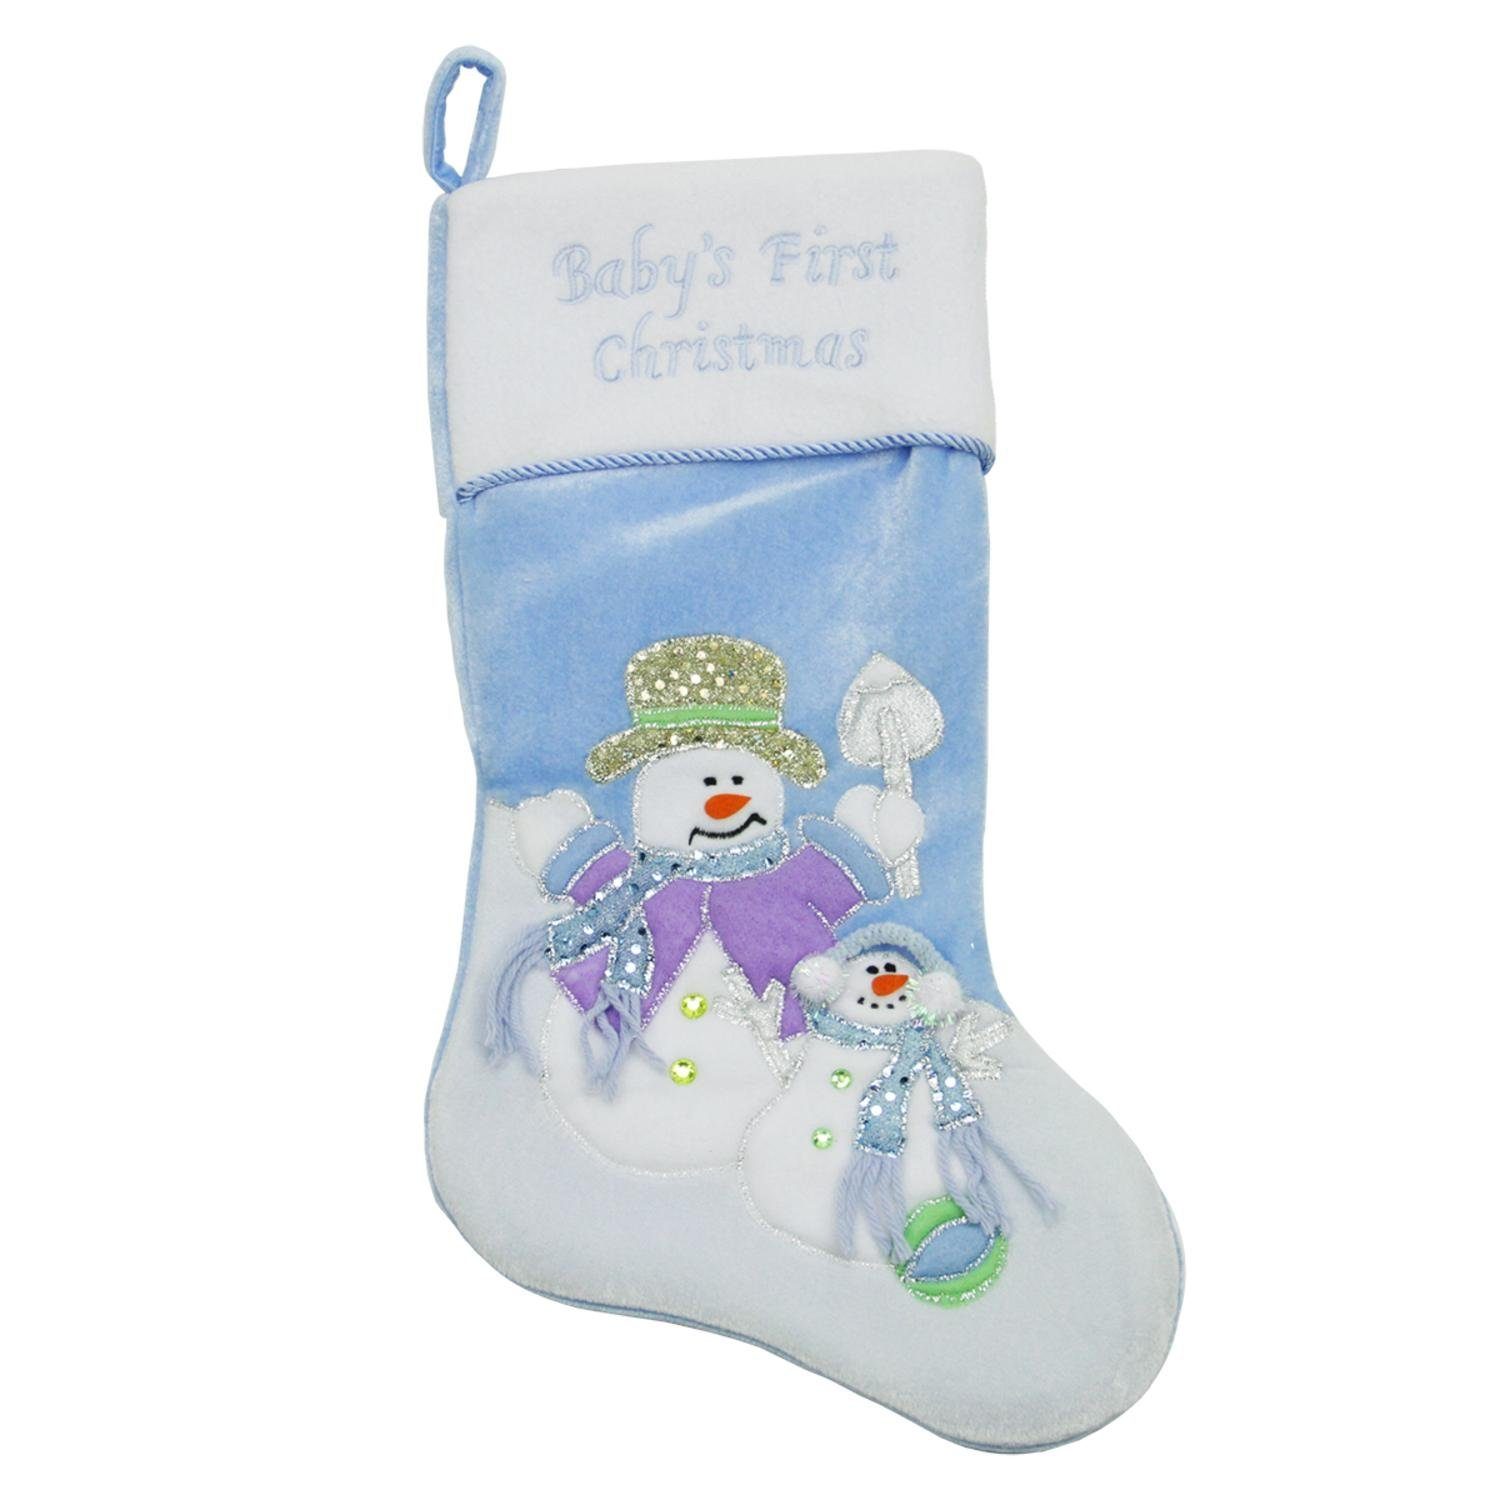 Northlight Baby's First Christmas Velveteen Snowman Christmas Stocking